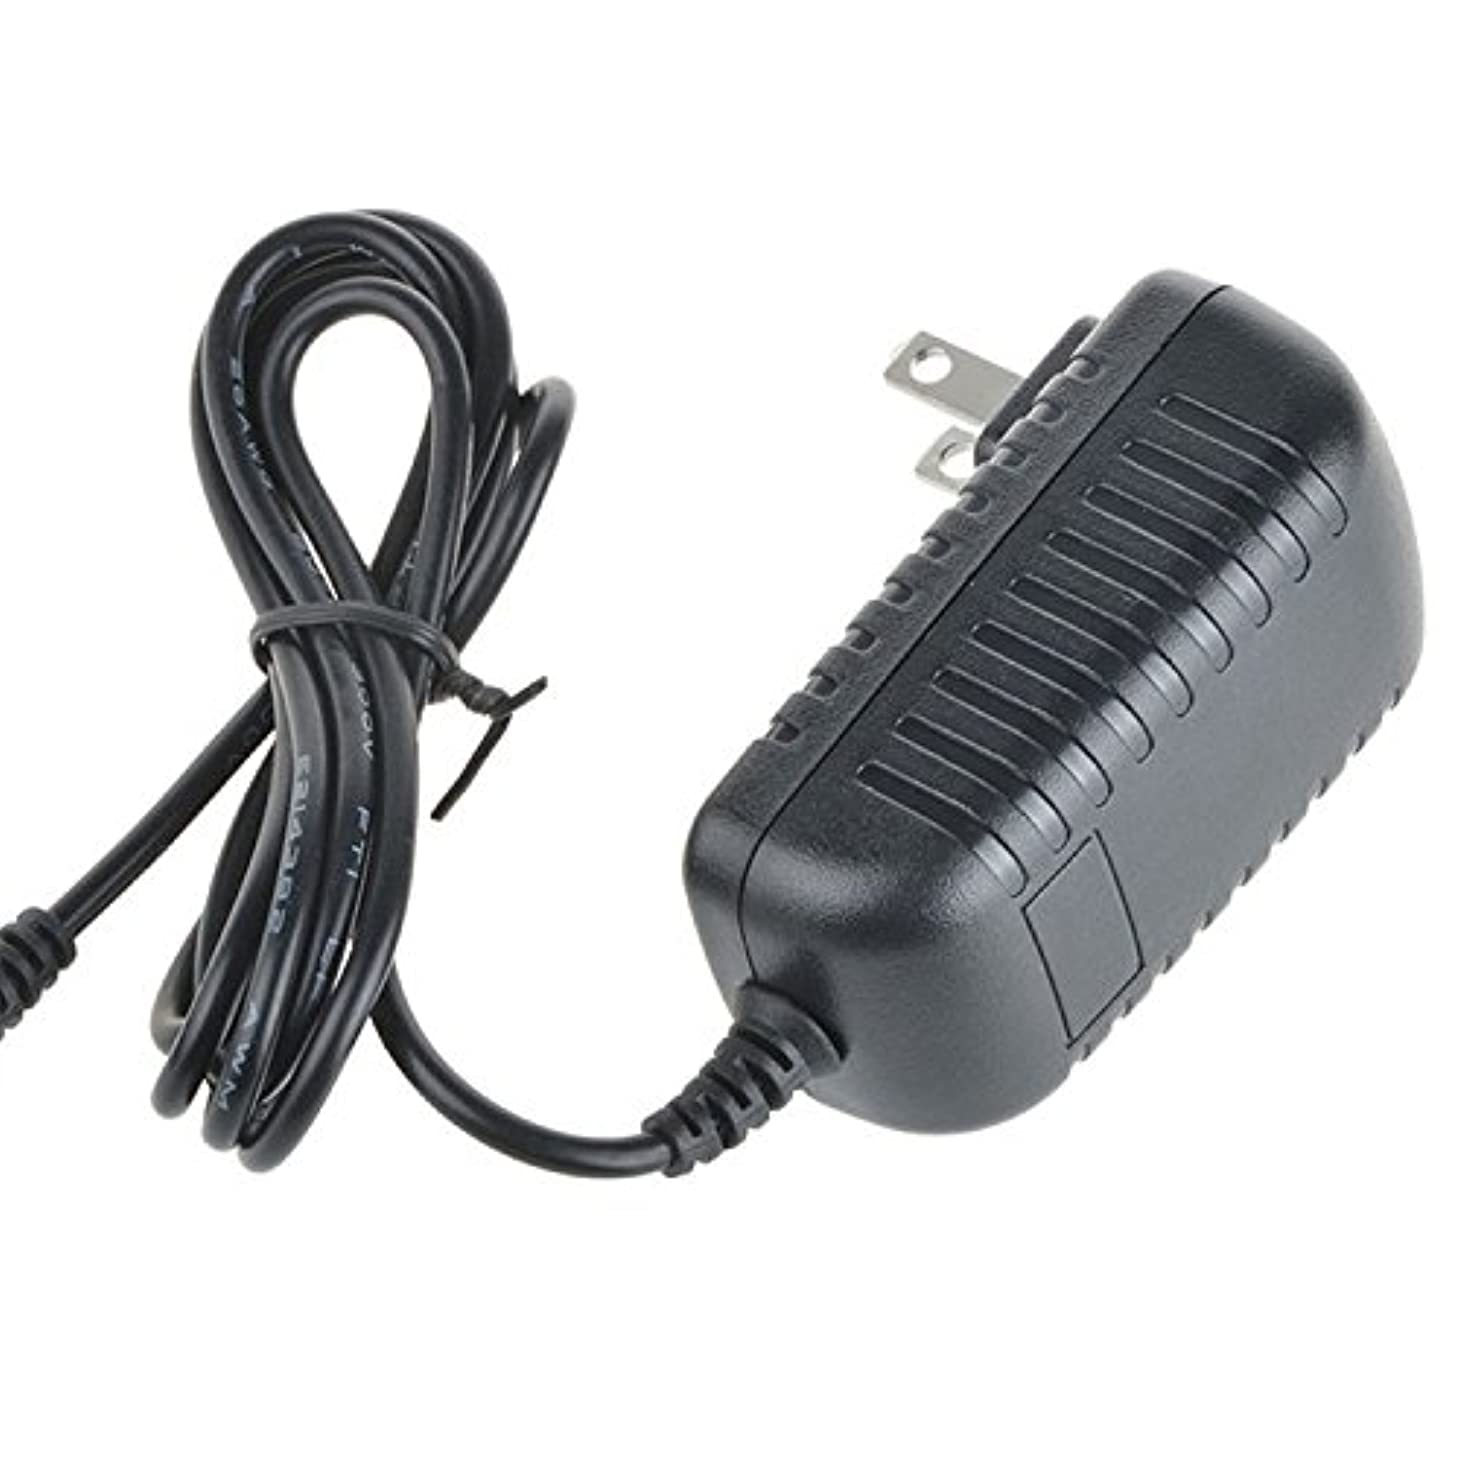 Accessory USA AC DC Adapter for ProForm ZX2 ZR3 XP 185U XP 400R Stationary Bikes Recumbent Exercise Bike Power Supply Cord Cable PS Charger